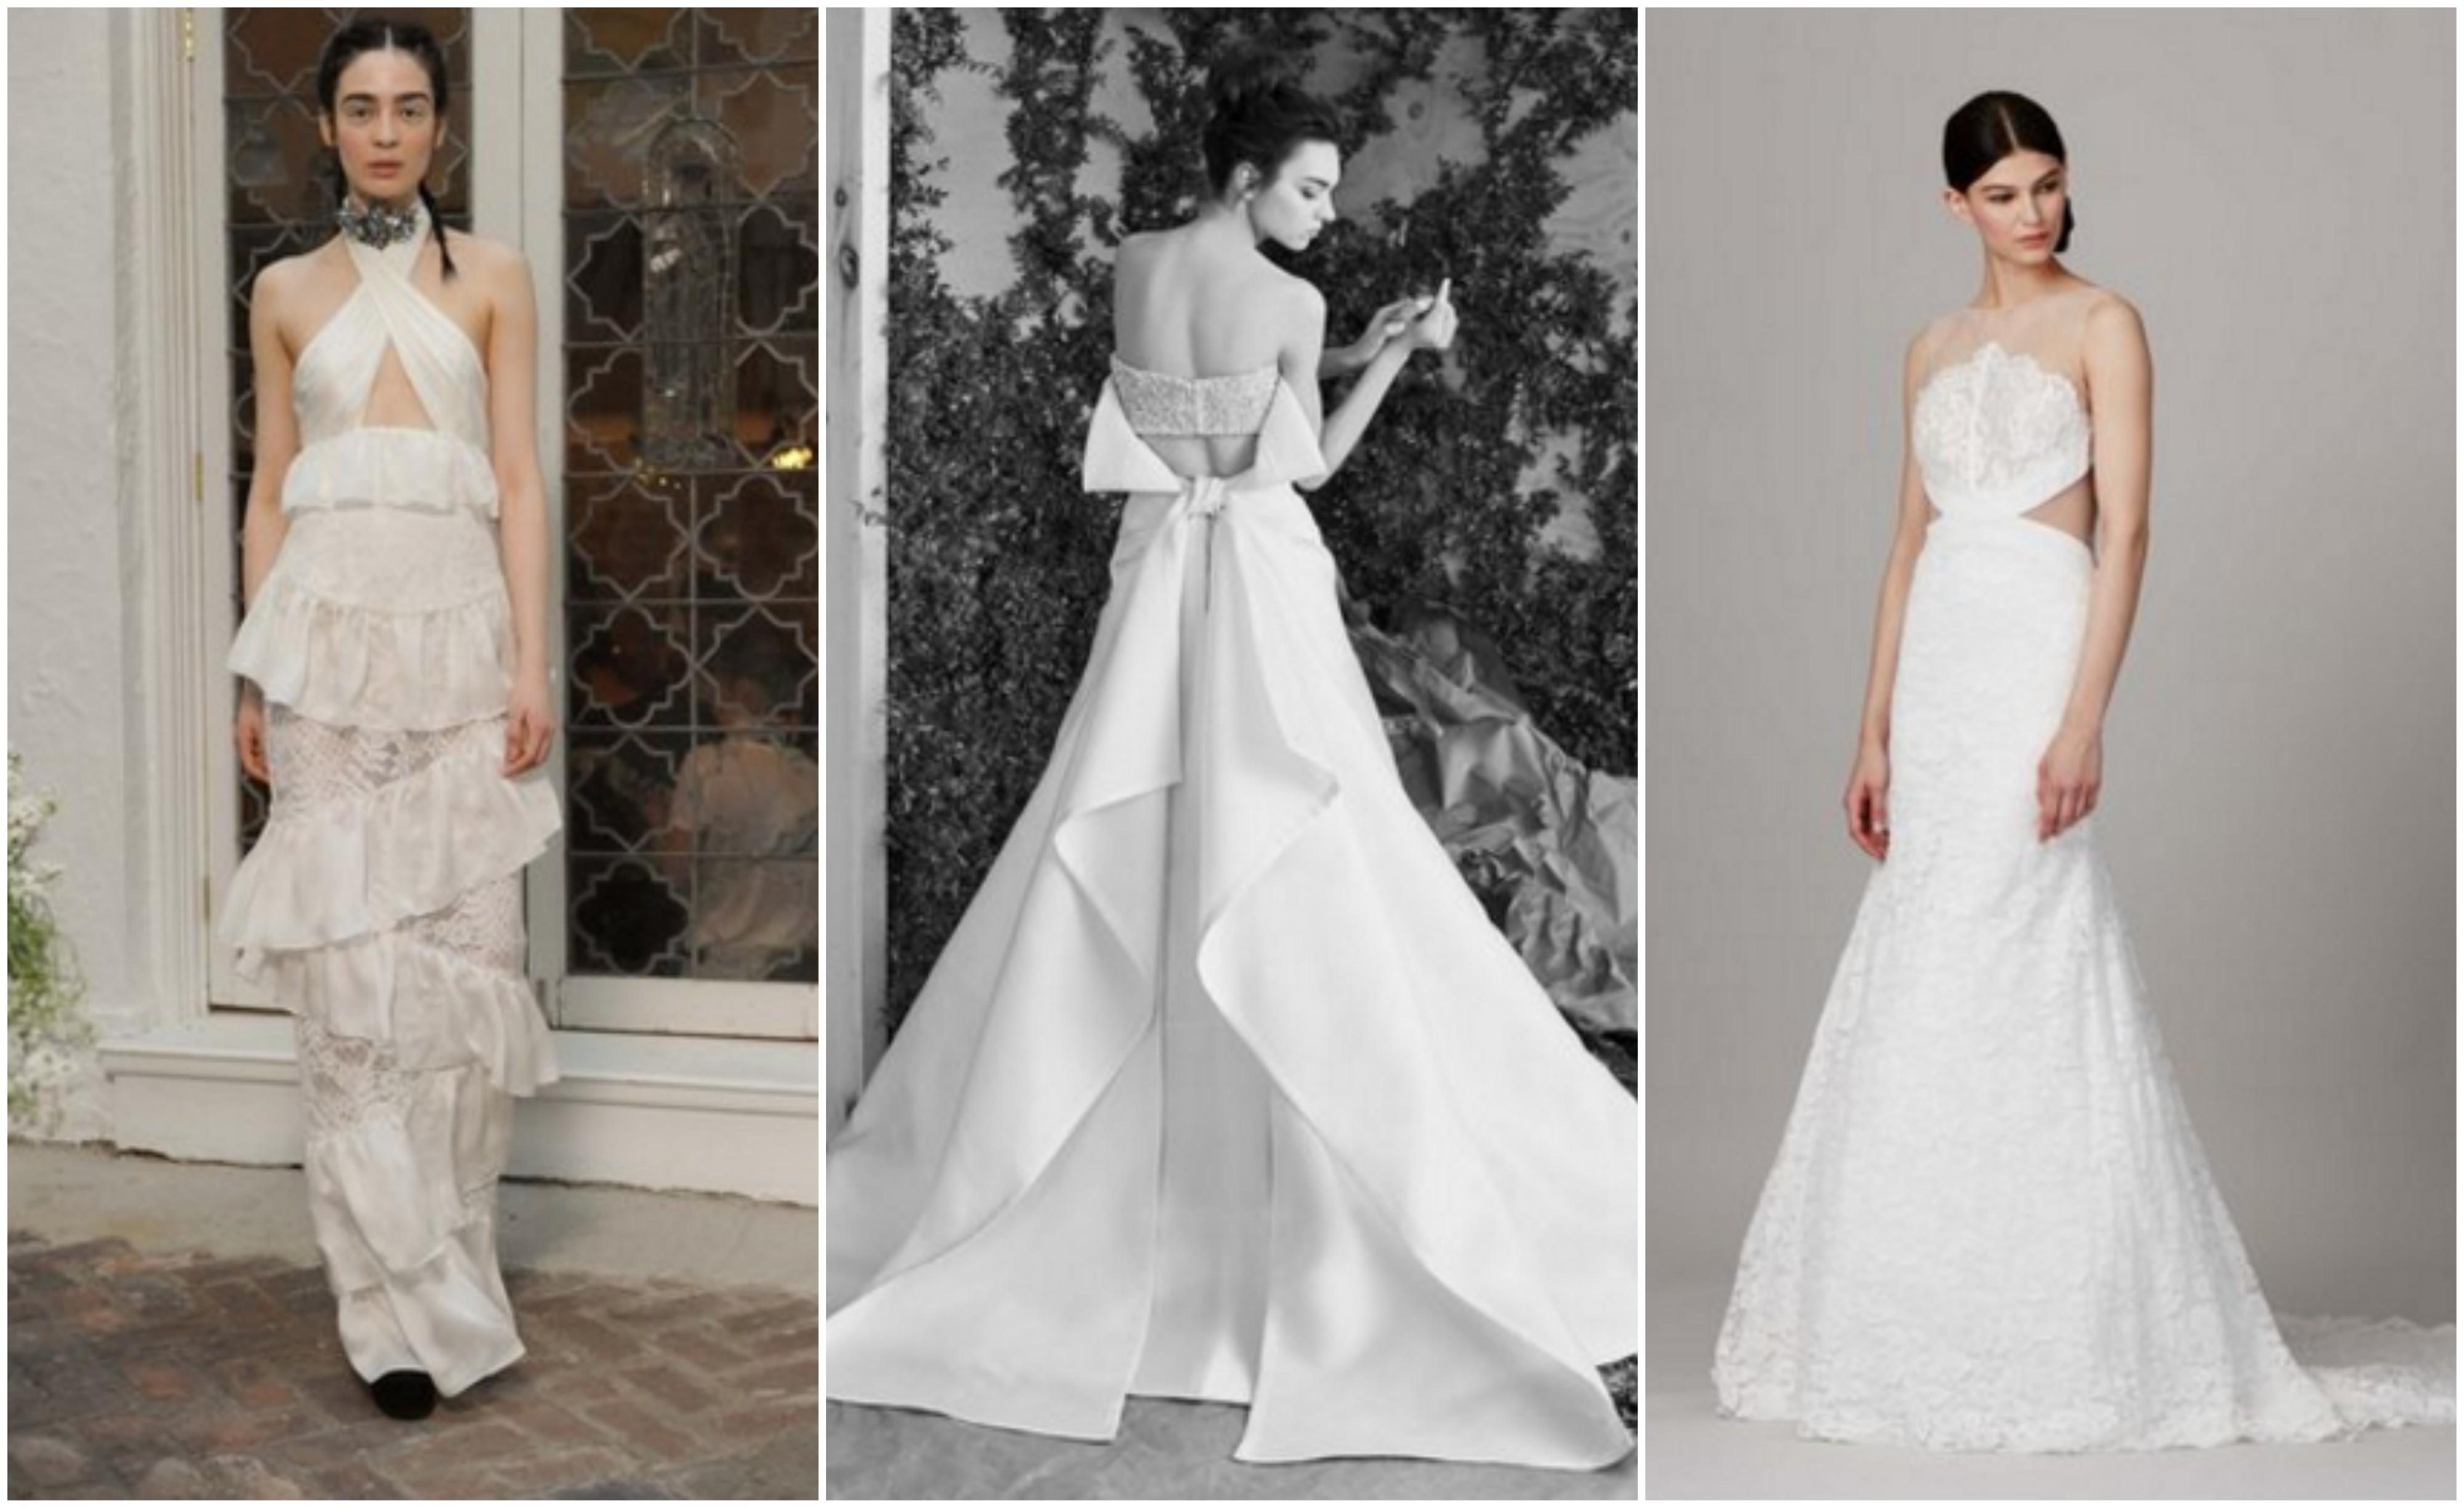 Top 2017 Wedding Dress Trends